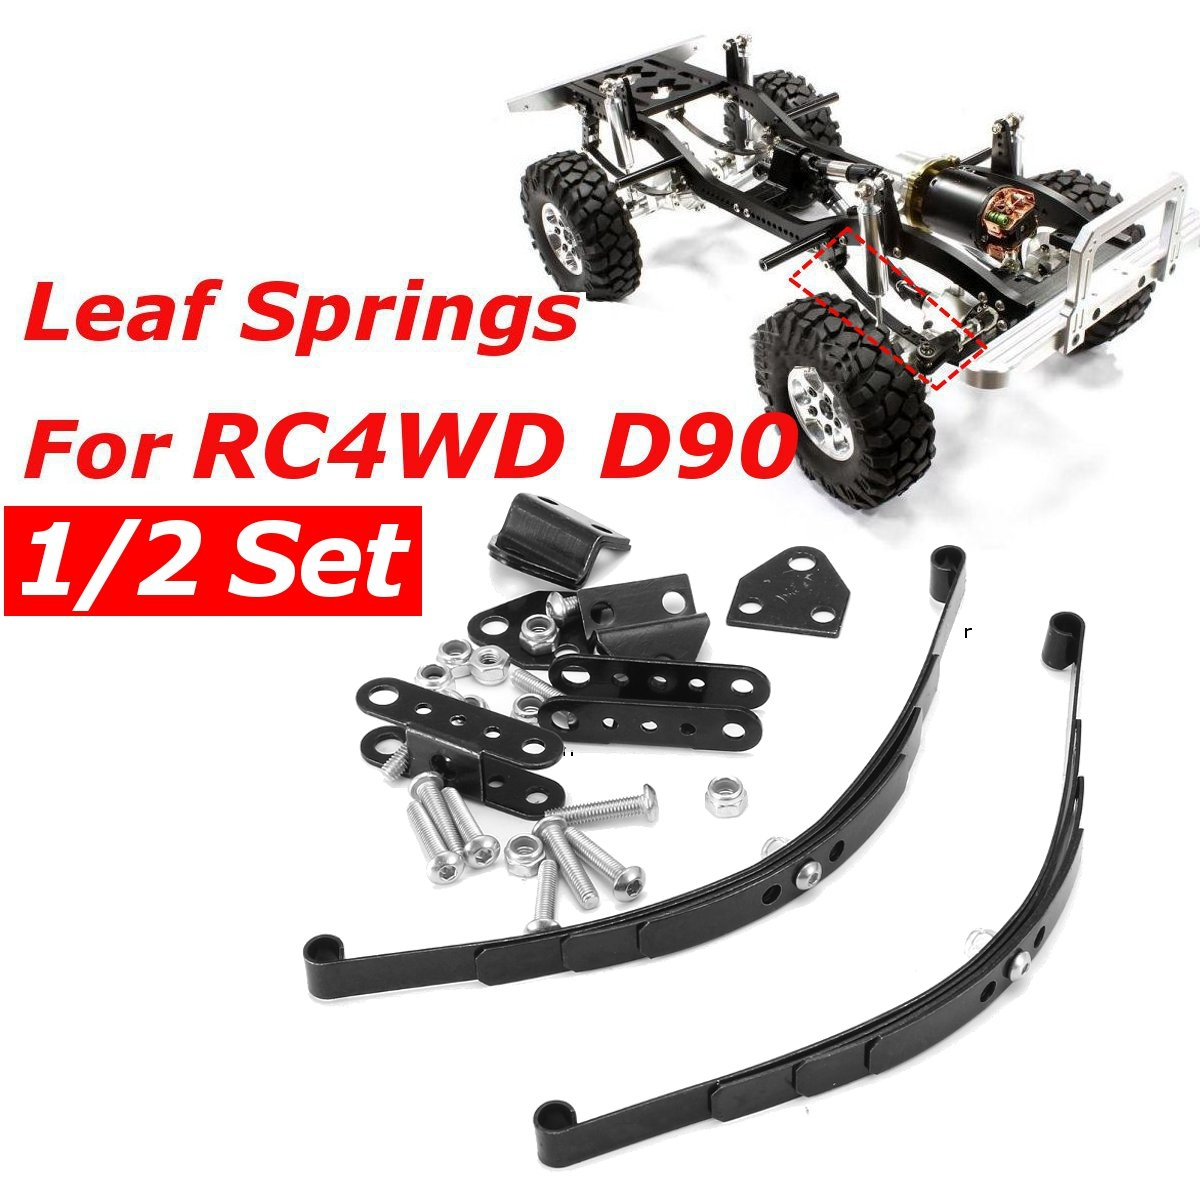 1/2 Set Speed Steel Leaf Type Suspension Car Crawler For RC 4WD TF2 D90 Car Parts